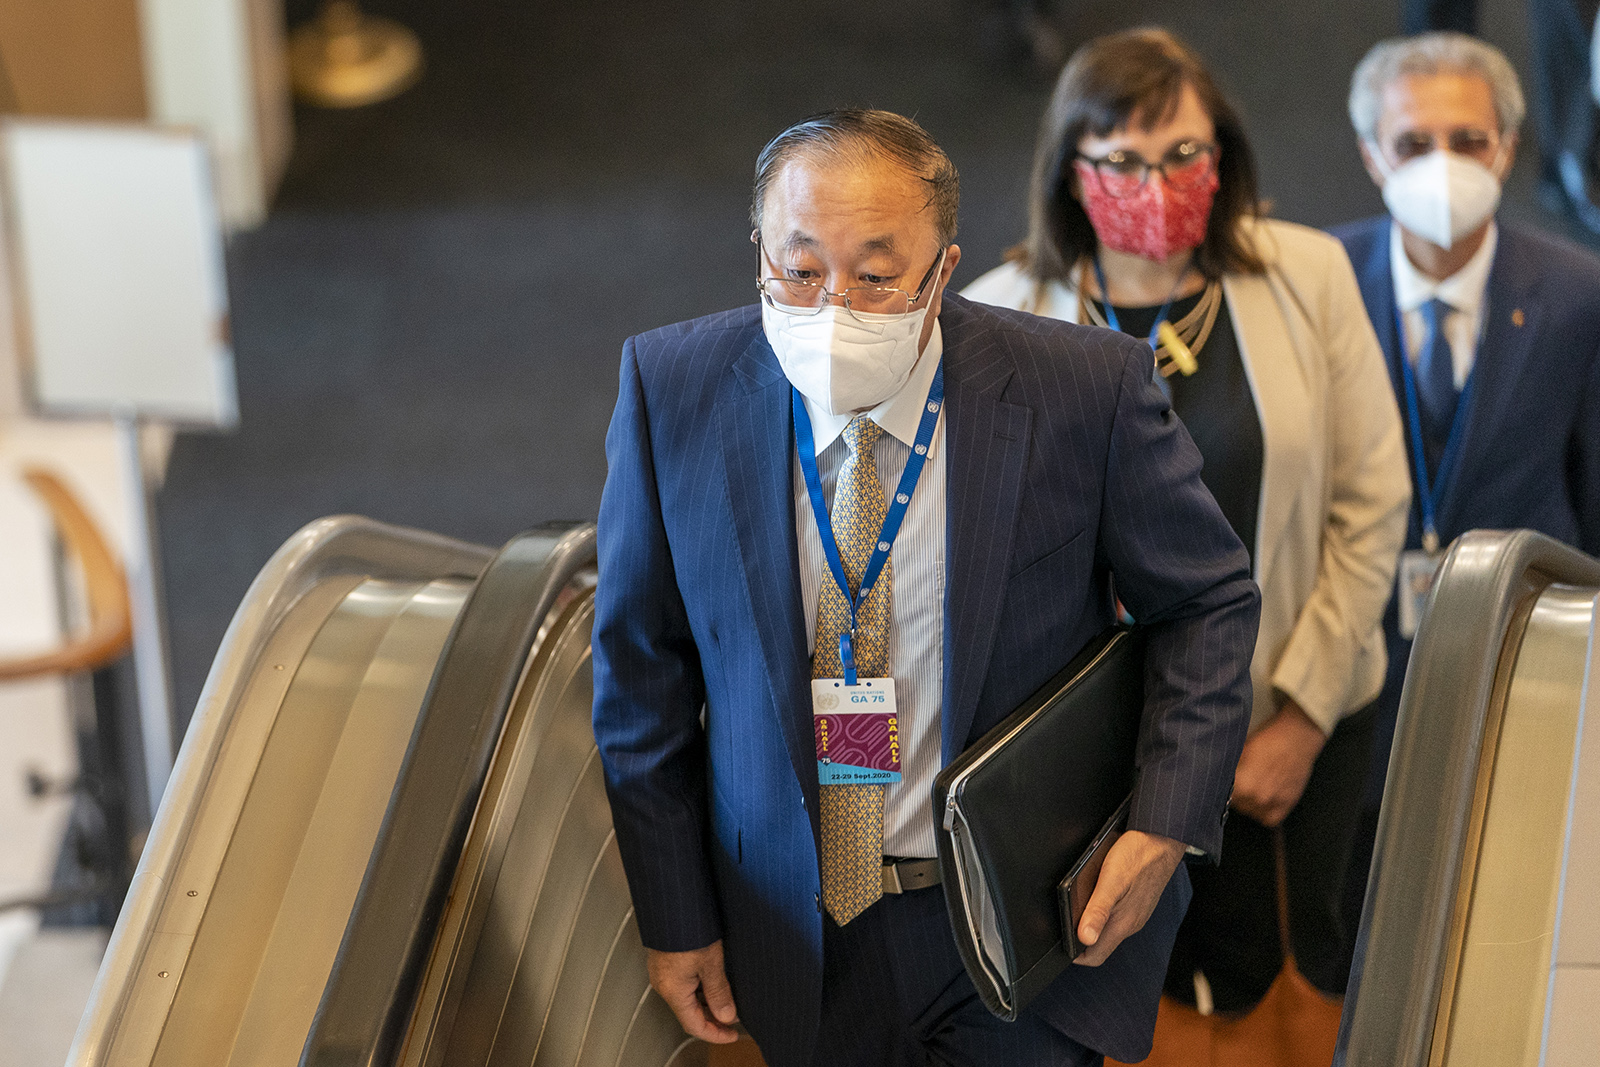 Chinese Ambassador to the United Nations Zhang Jun arrives for the 75th session of the United Nations General Assembly on Tuesday in New York.